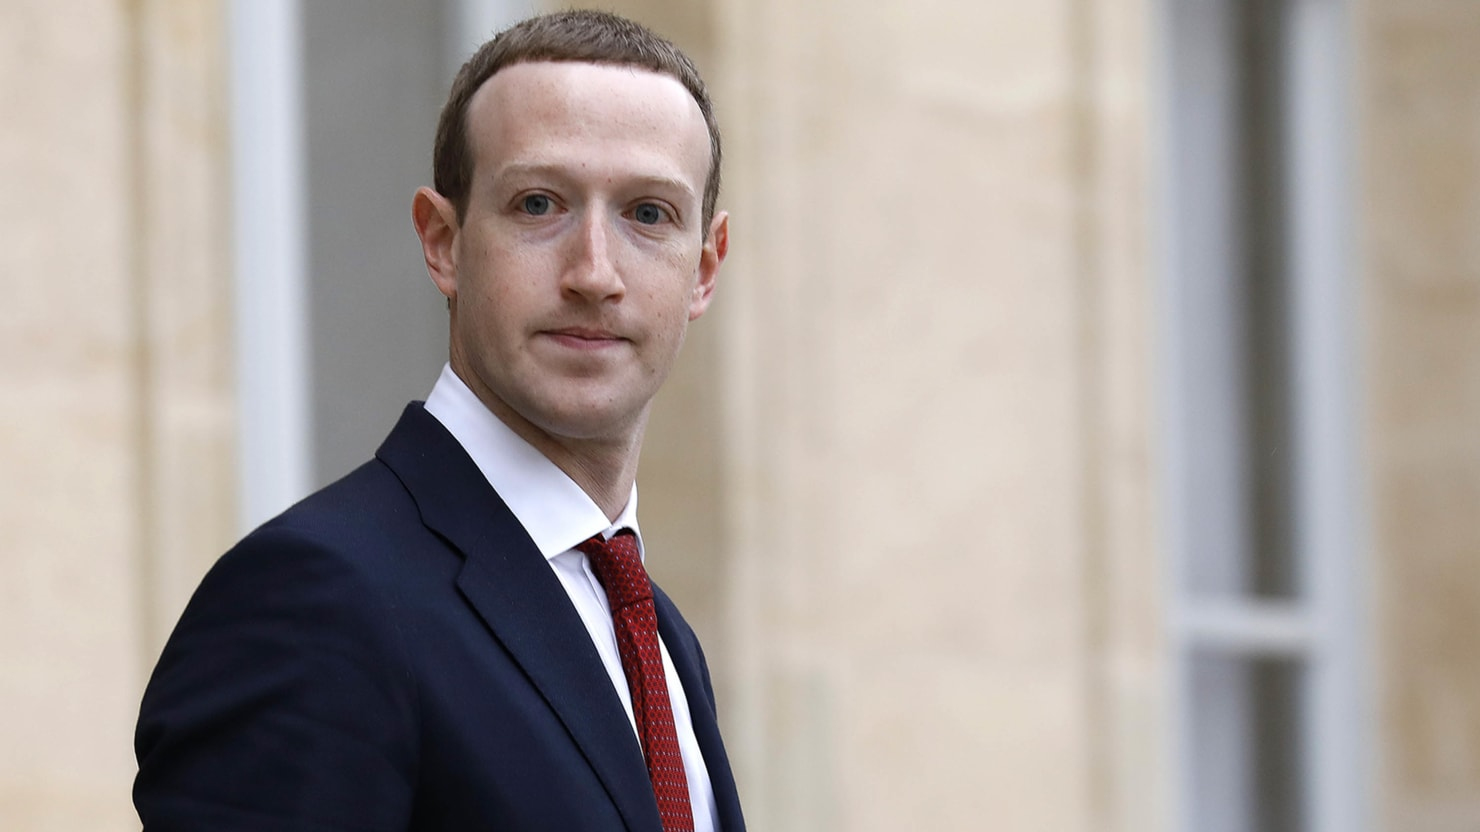 Facebook Won't Sell Off Instagram and WhatsApp, Senator Says Zuckerberg Told Him